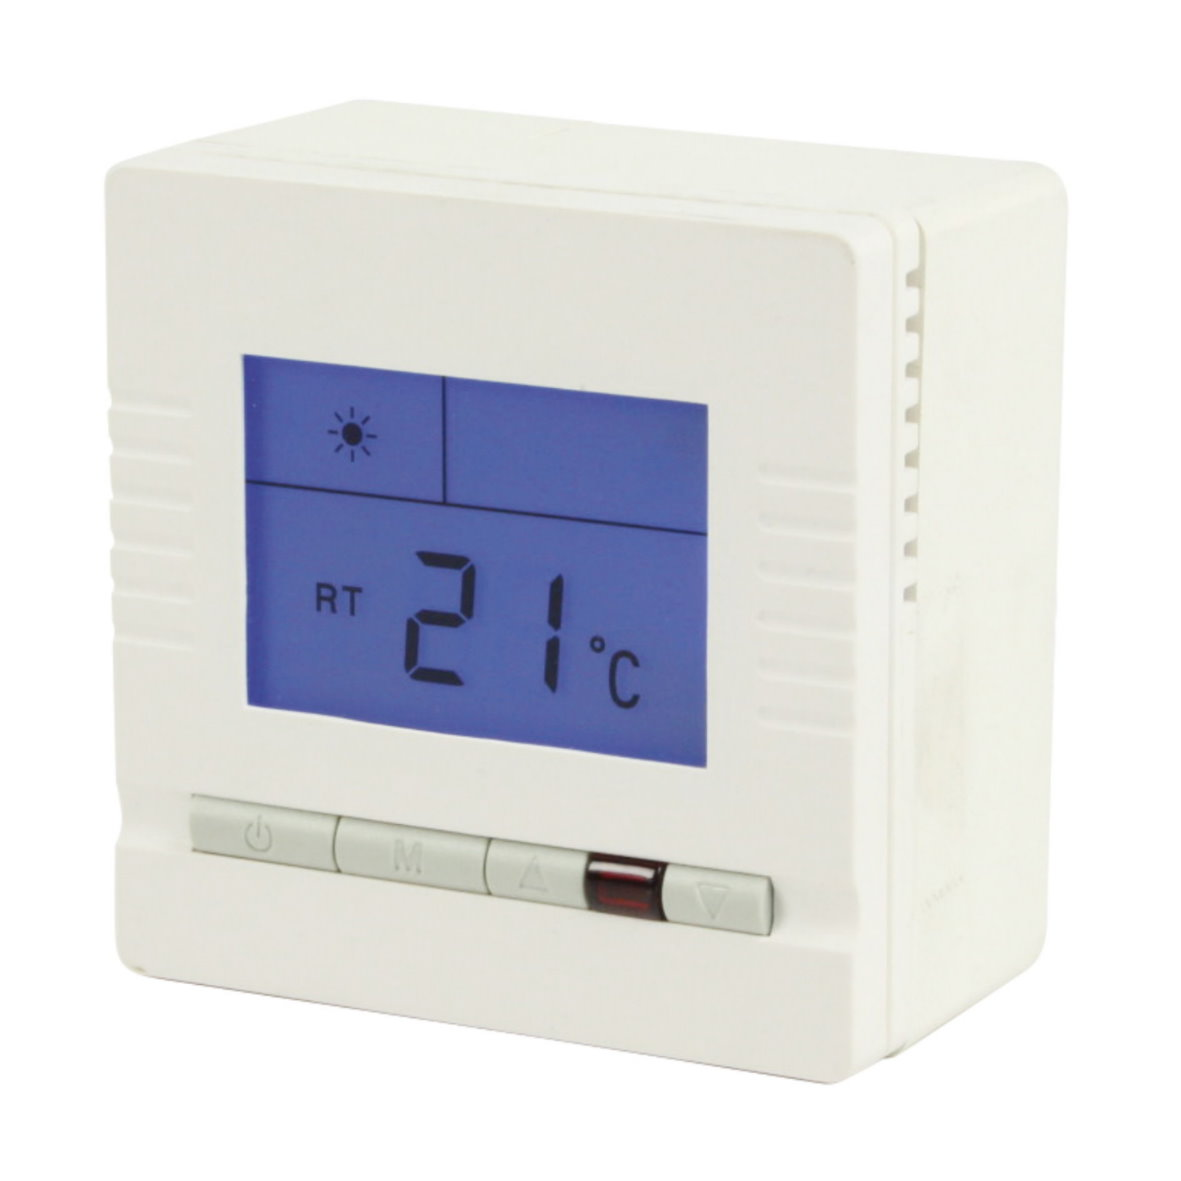 analoger digitaler raumthermostat heizung thermostat fu bodenheizung aufputz. Black Bedroom Furniture Sets. Home Design Ideas